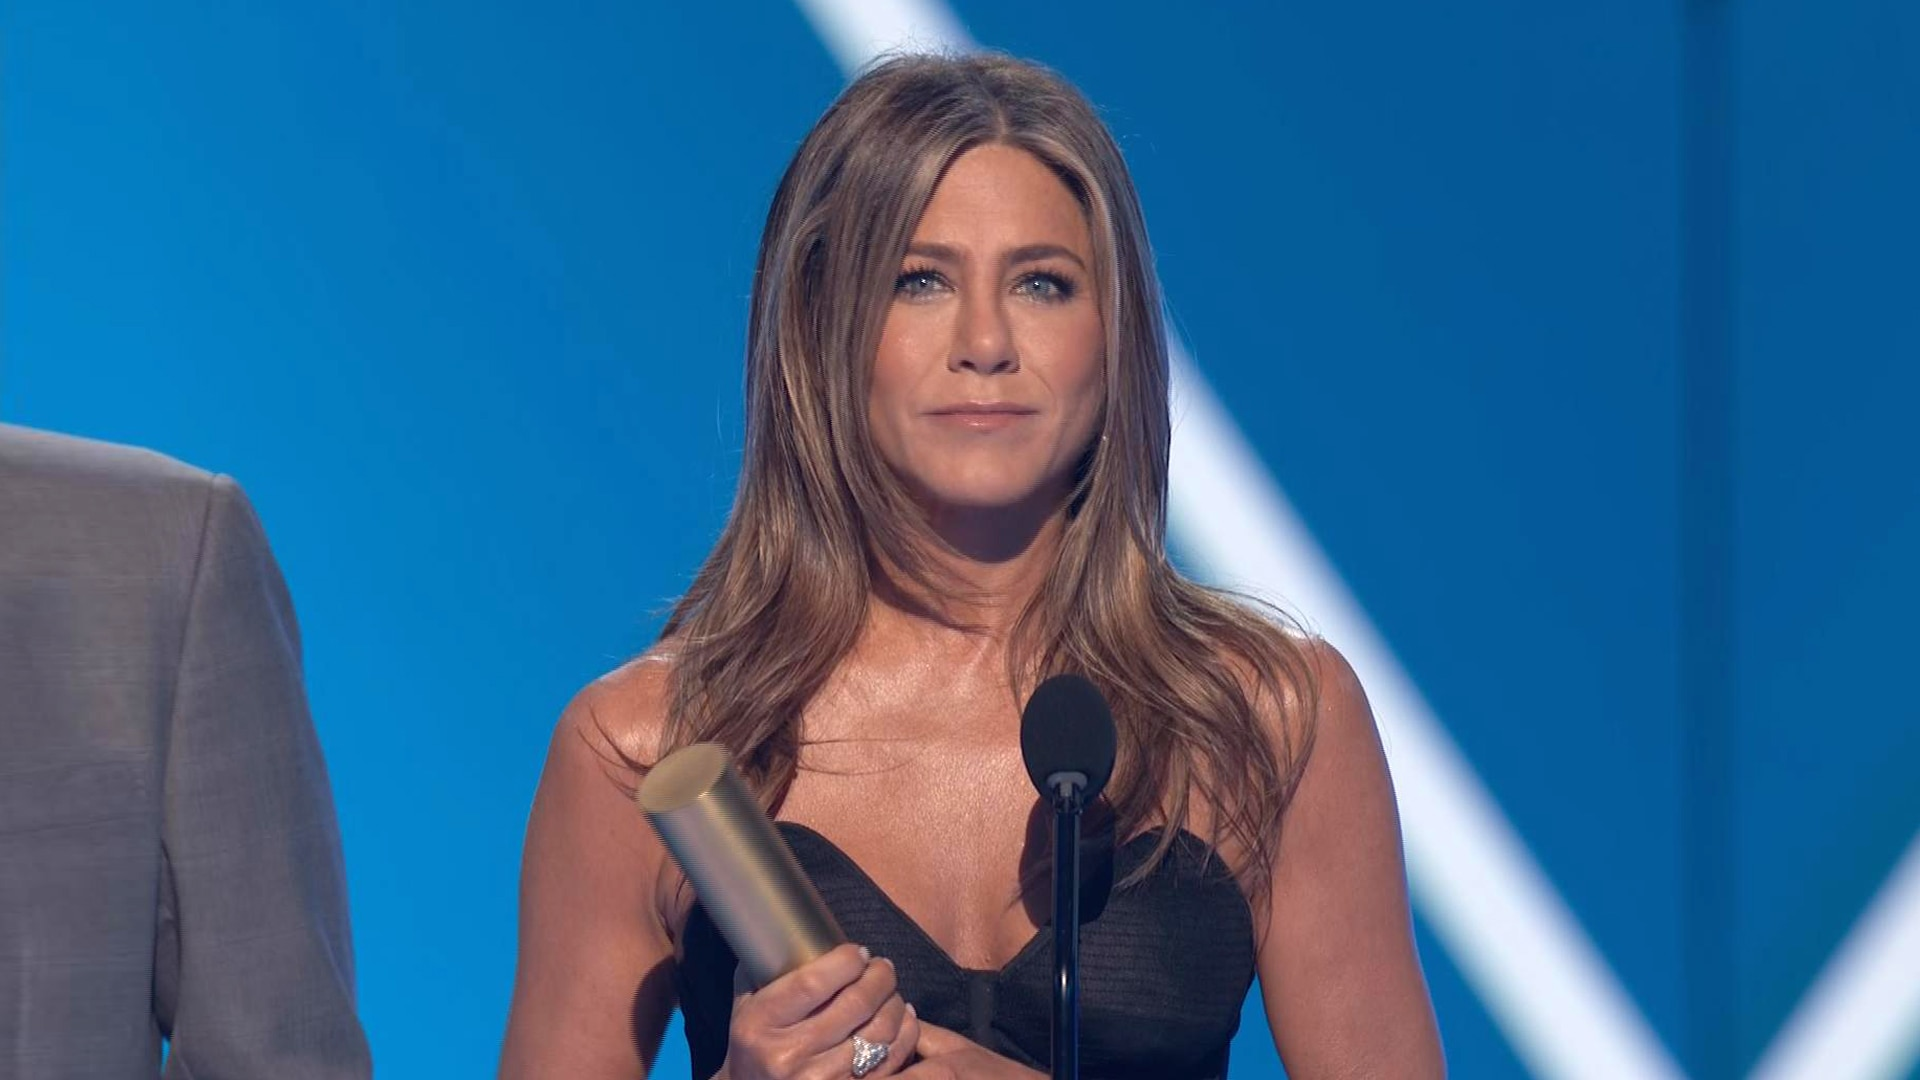 Jennifer Aniston Pays Tribute to Friends in Iconic PCAs Speech